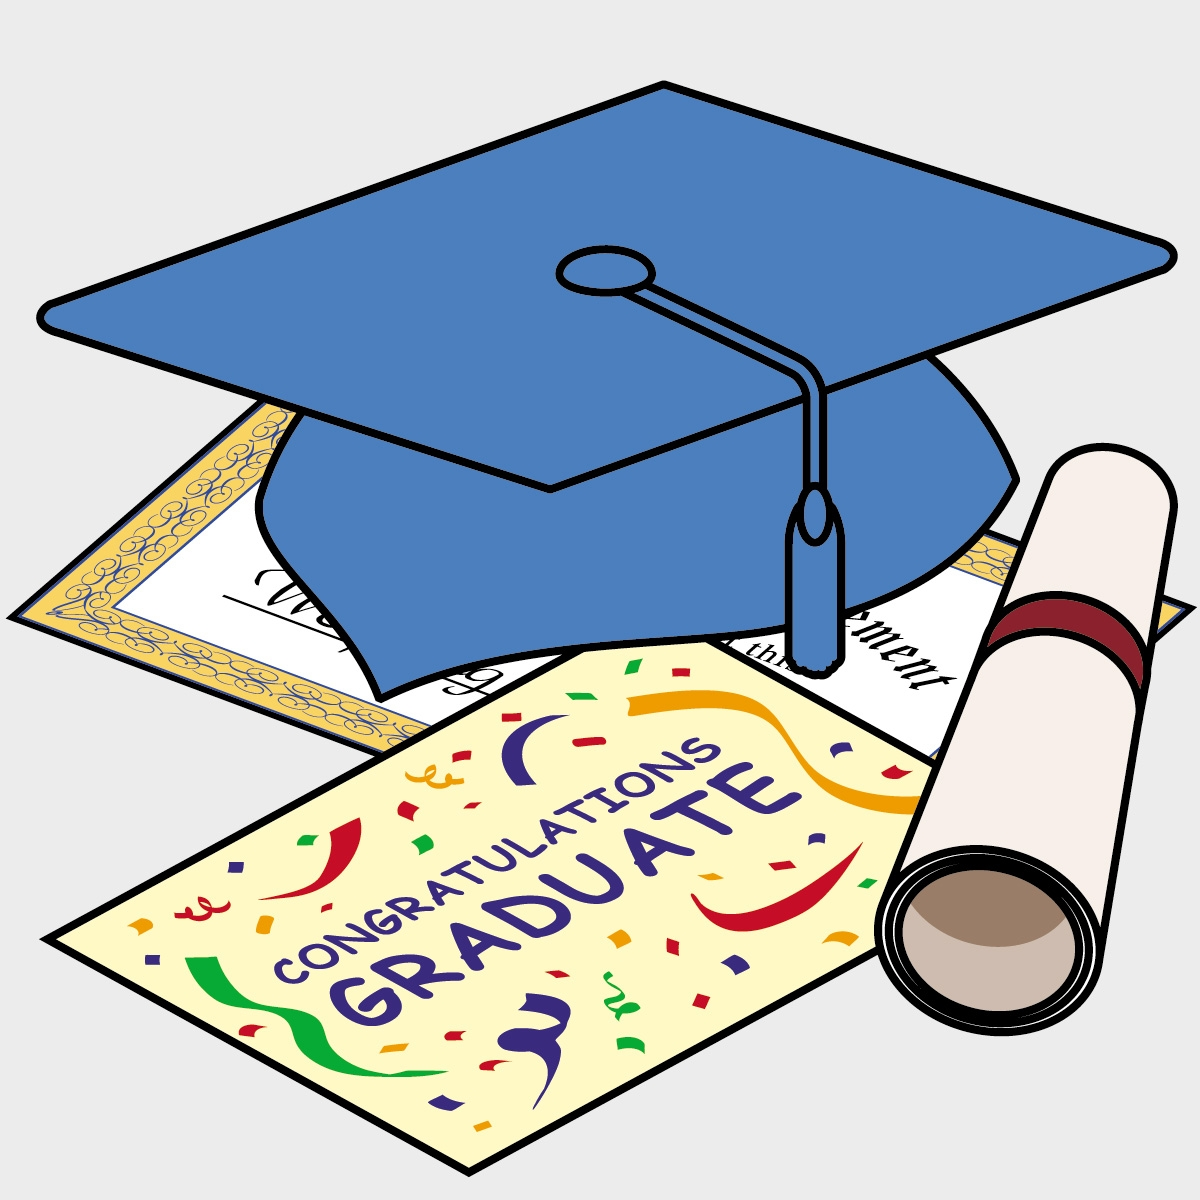 Free clipart images of high school graduation 2018 jpg royalty free stock Free Spanish Graduation Cliparts, Download Free Clip Art, Free Clip ... jpg royalty free stock